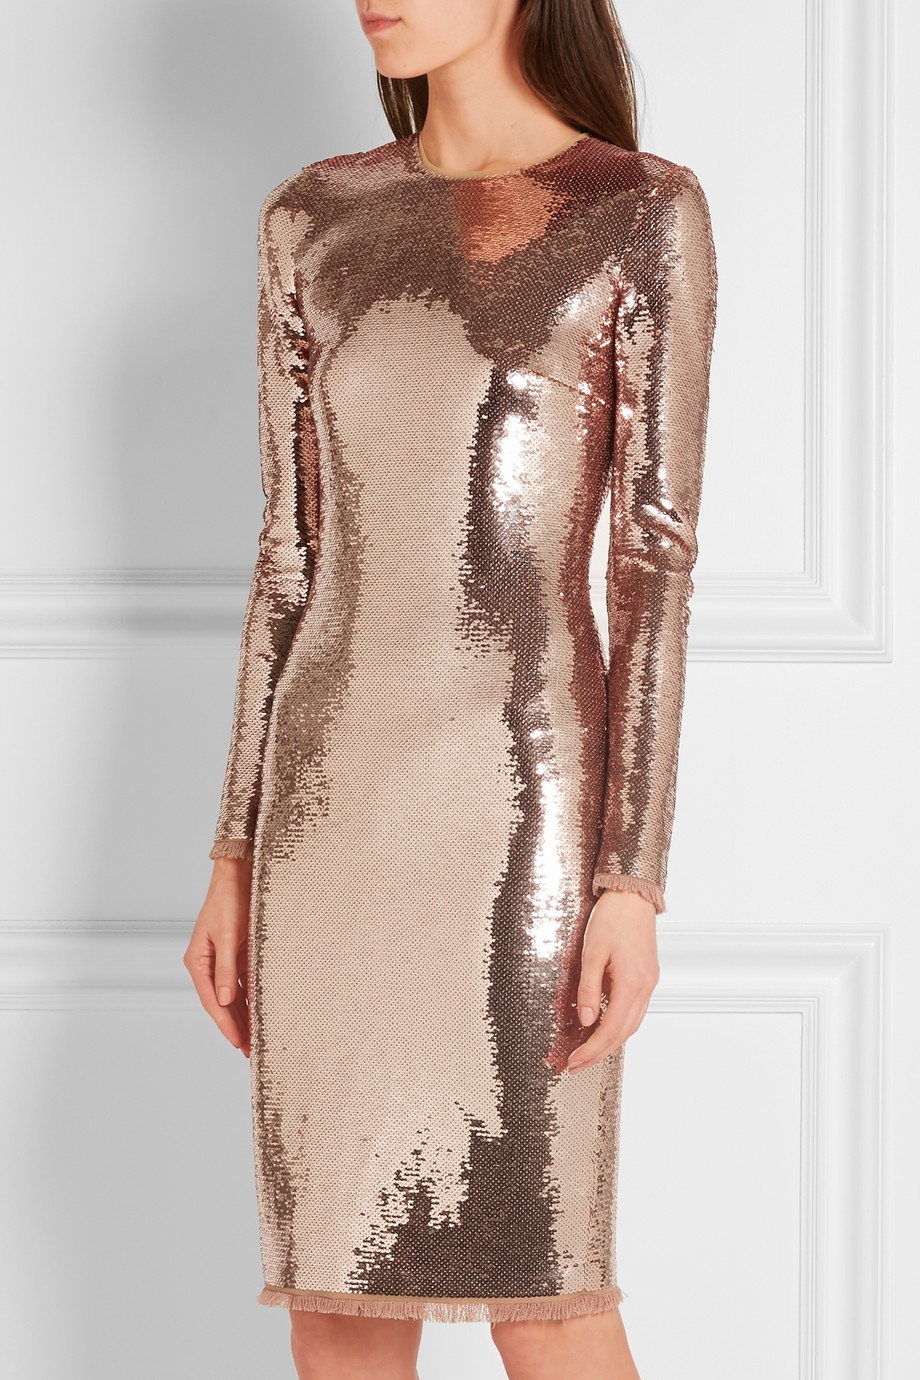 tom ford sequins dress